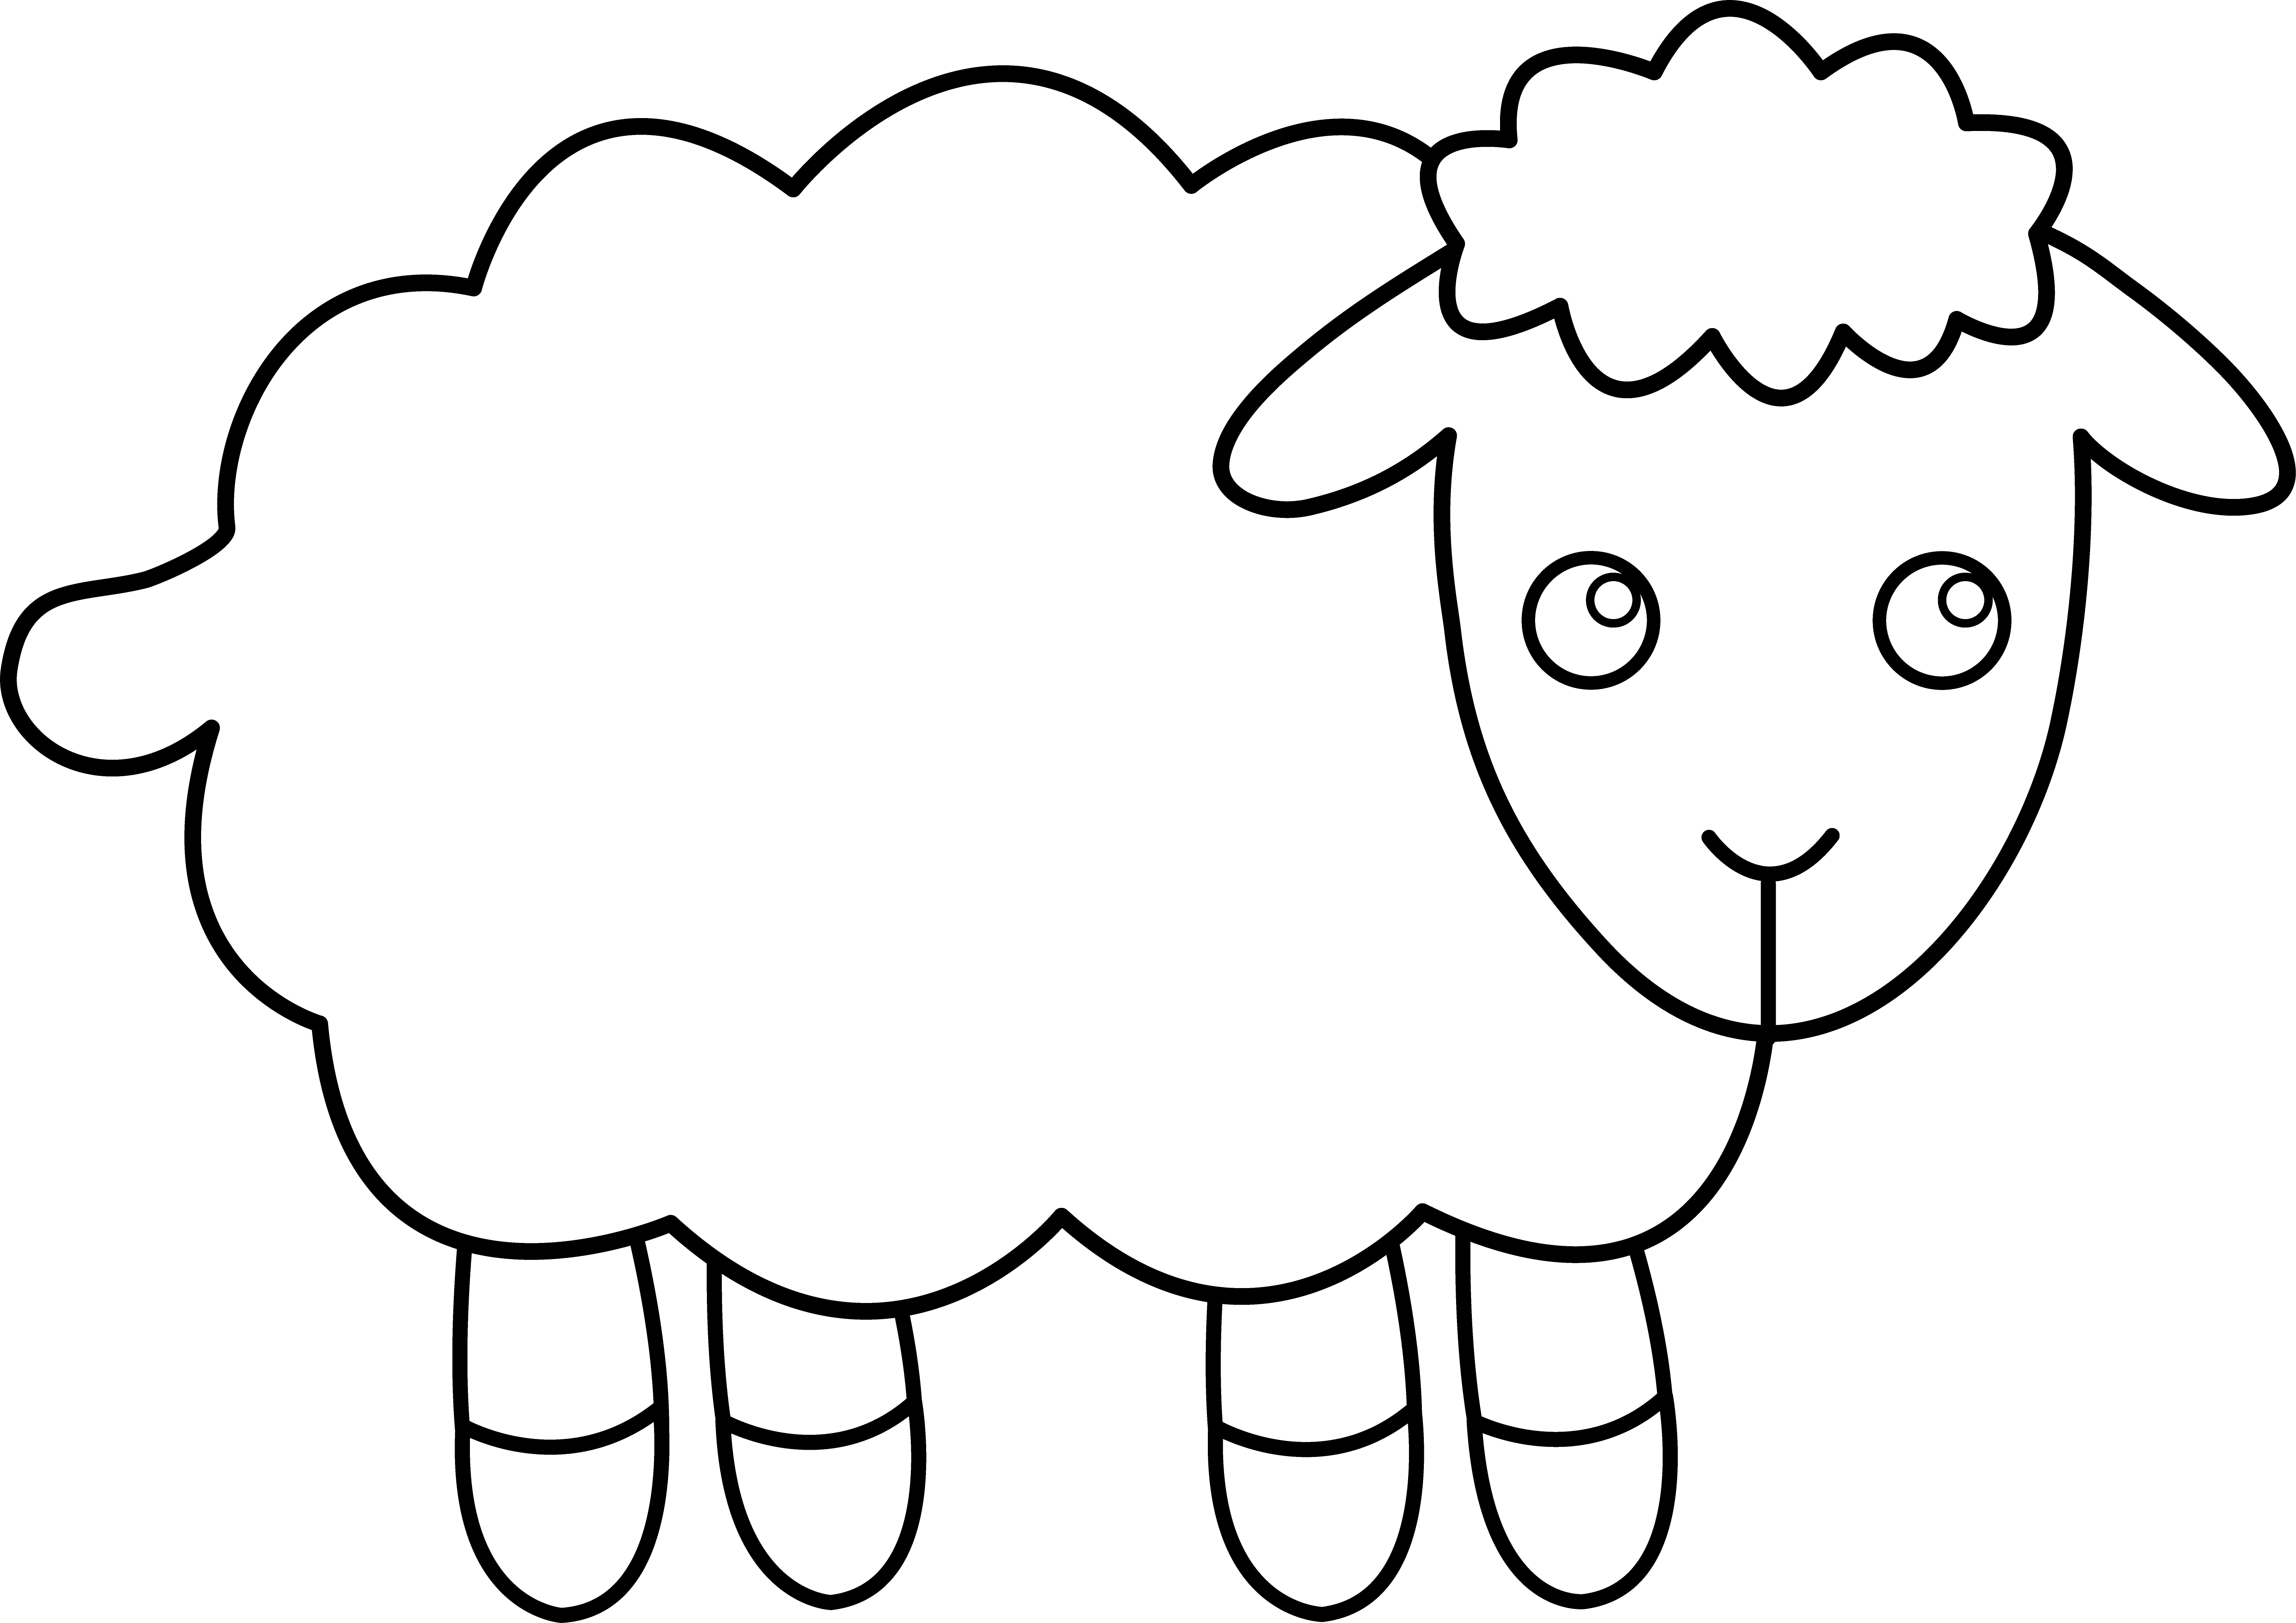 Sheep panda free images. Quilt clipart sketch